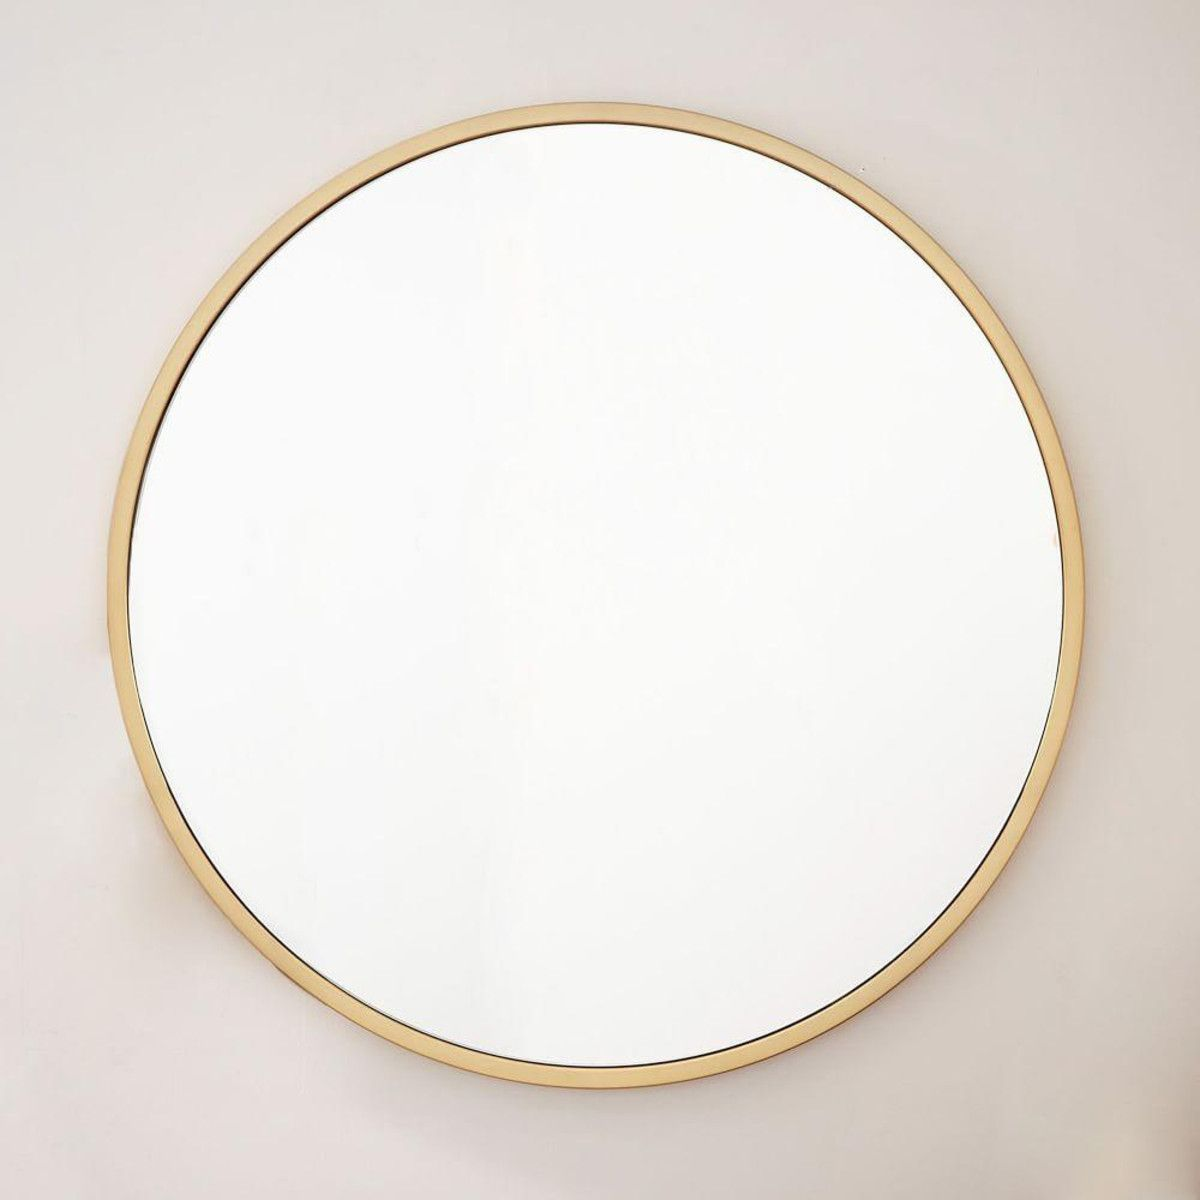 Metal framed oversized round mirror antique brass Round framed mirror